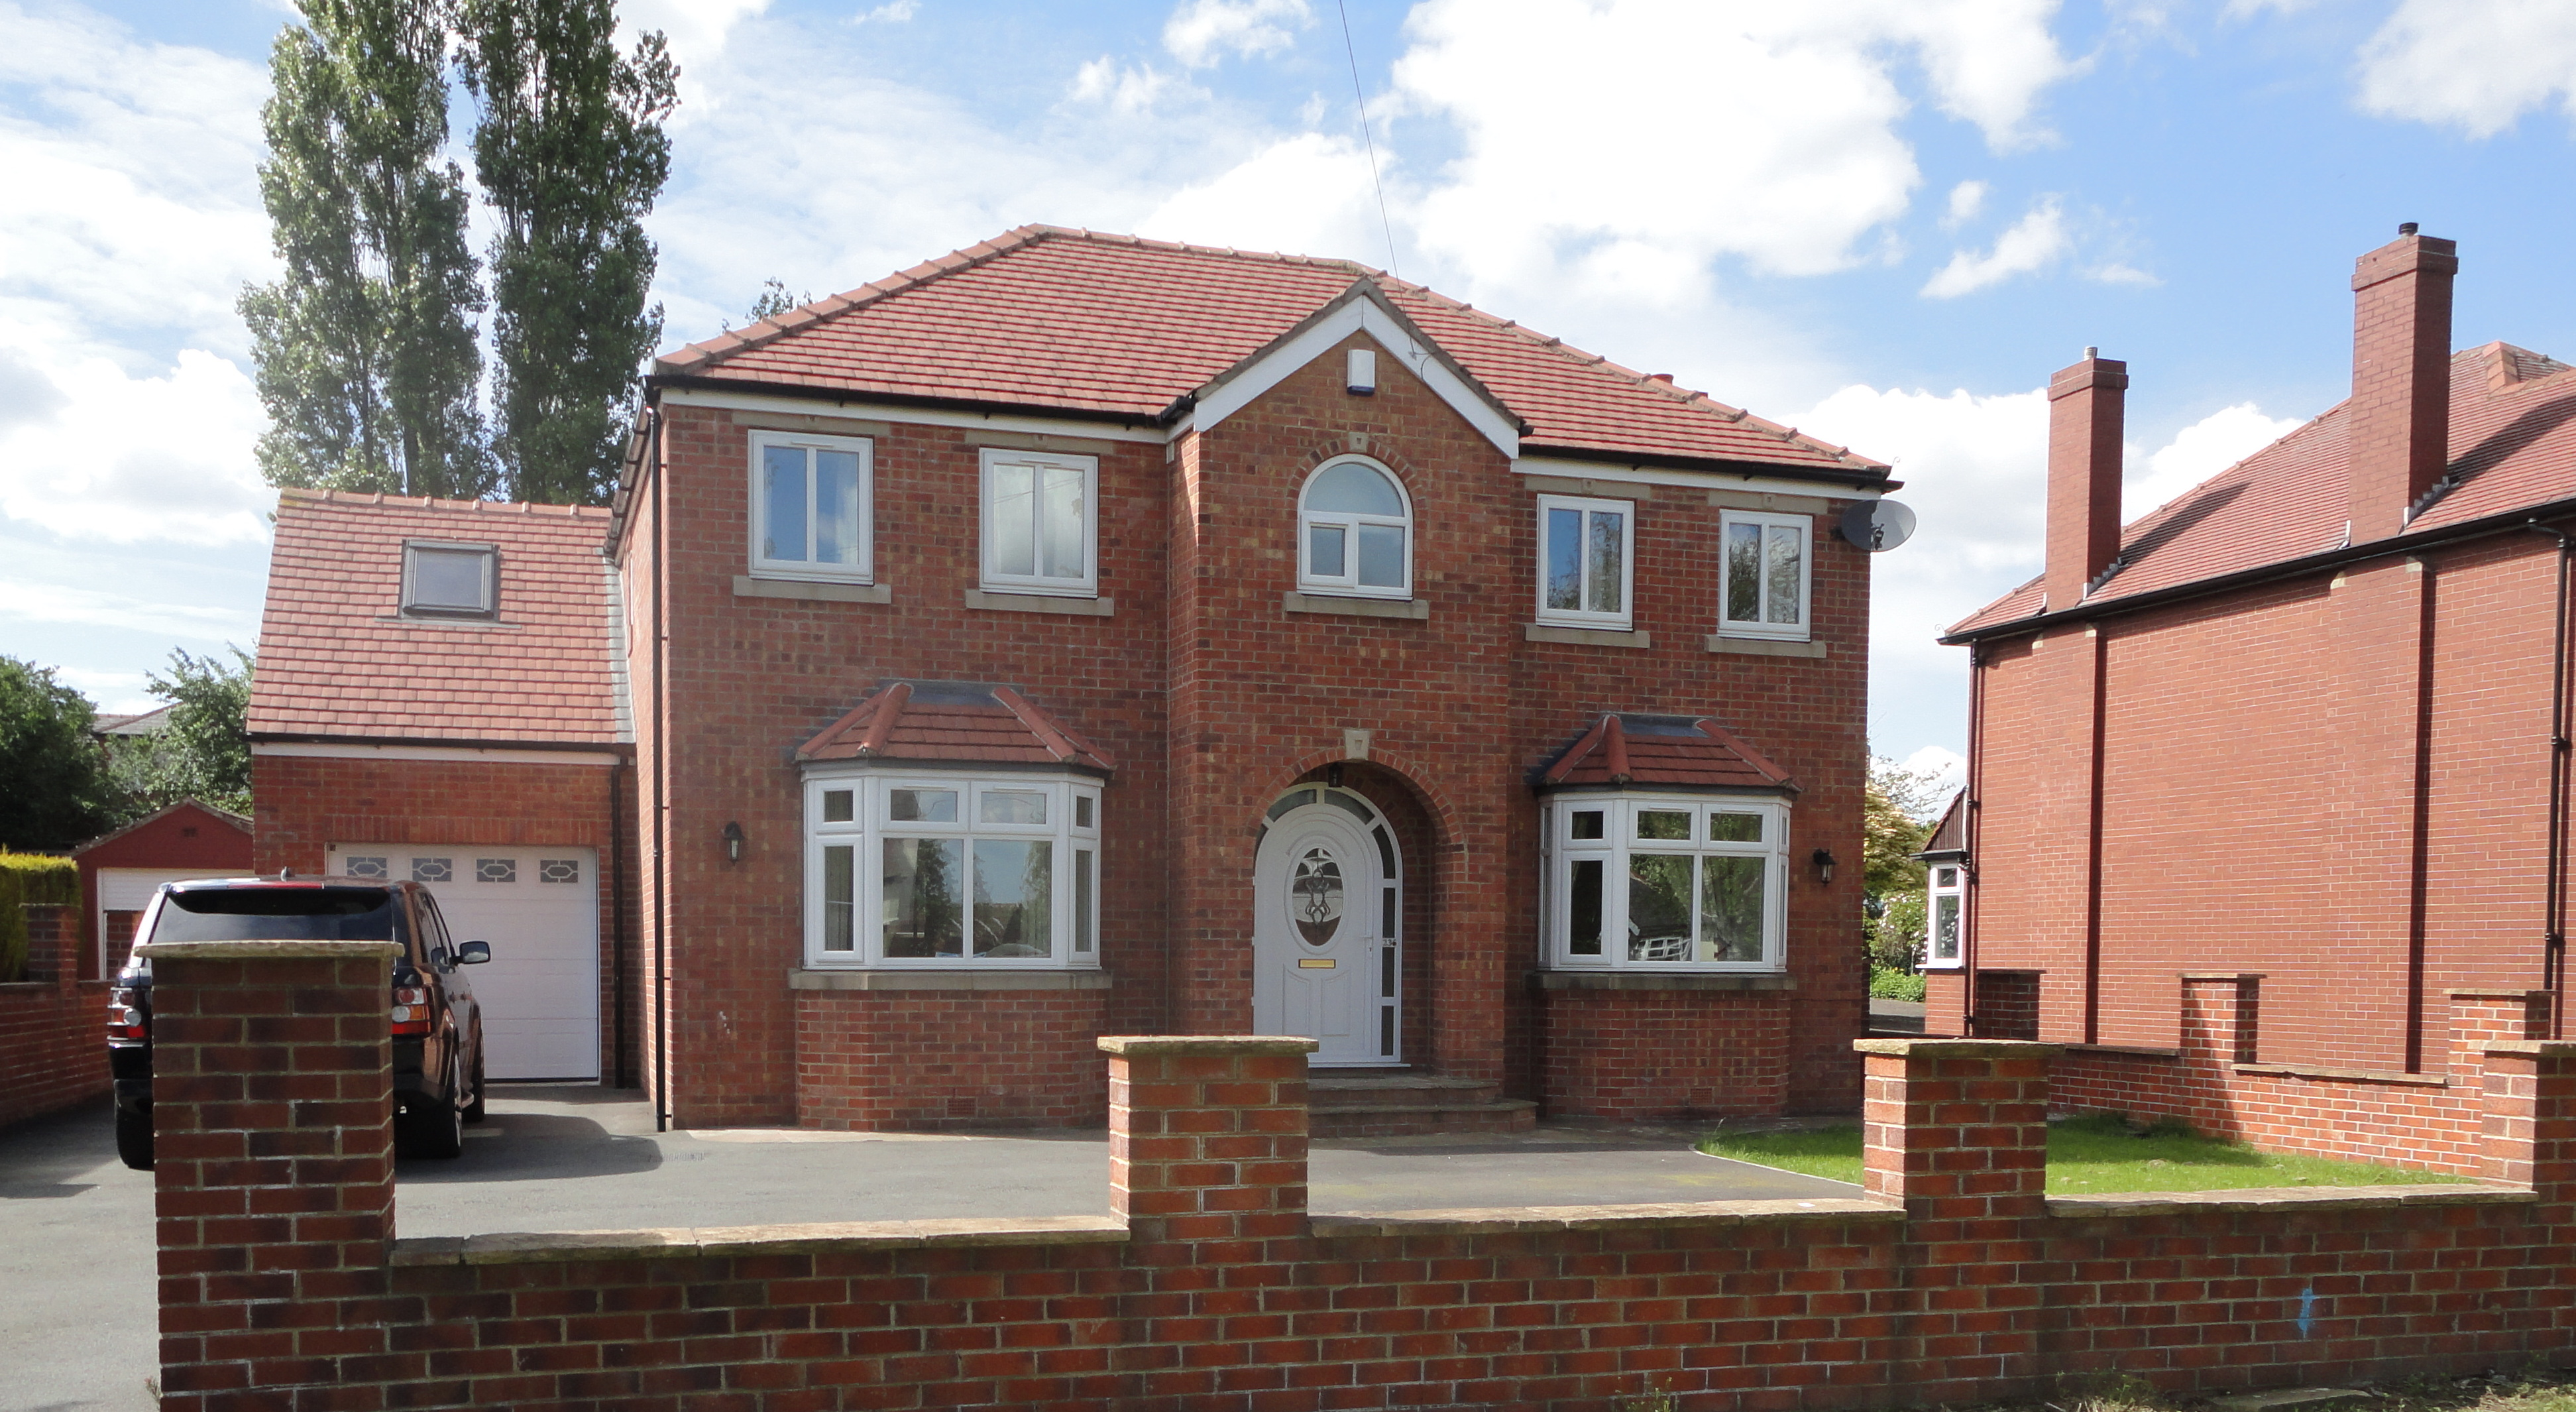 5 Bedrooms - Liversedge